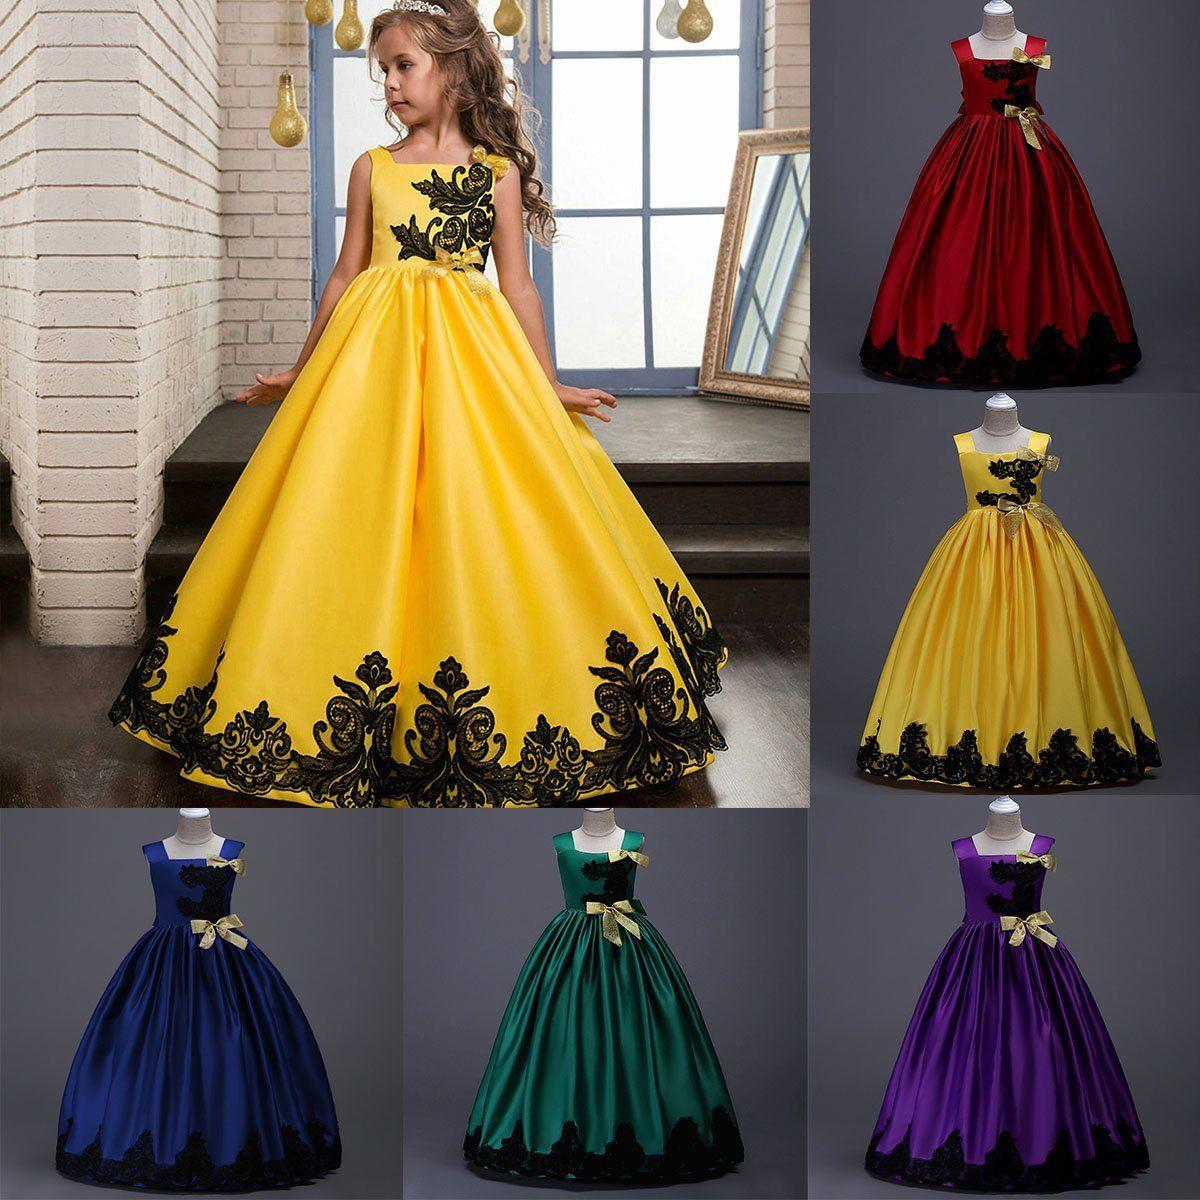 Buy Children Kids Girls Formal Occasion Bowknot Flower Dress Wedding Bridesmaid Prom Party Long Skirt Dresses Event Gown Size 120 170 On China